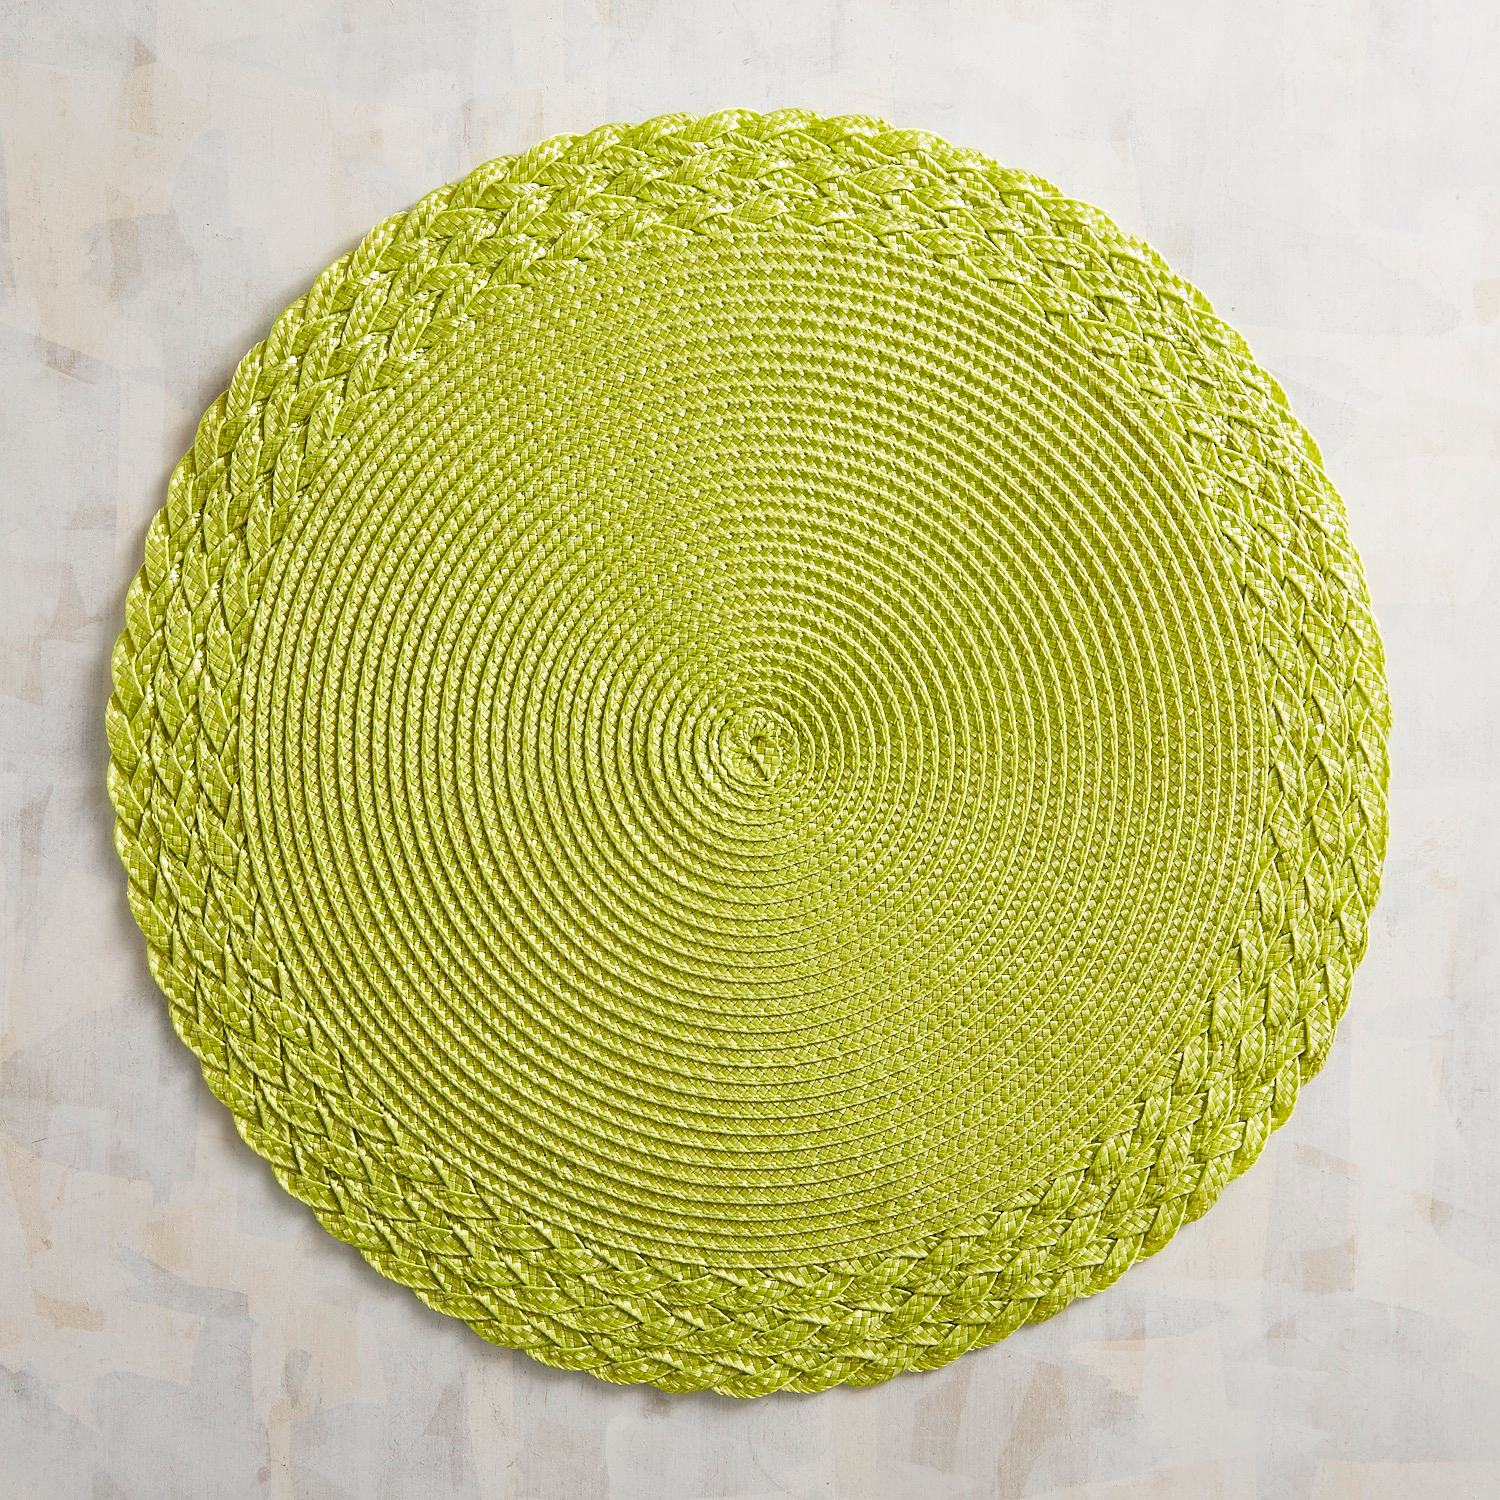 Braided Mesa Lime Green Placemat